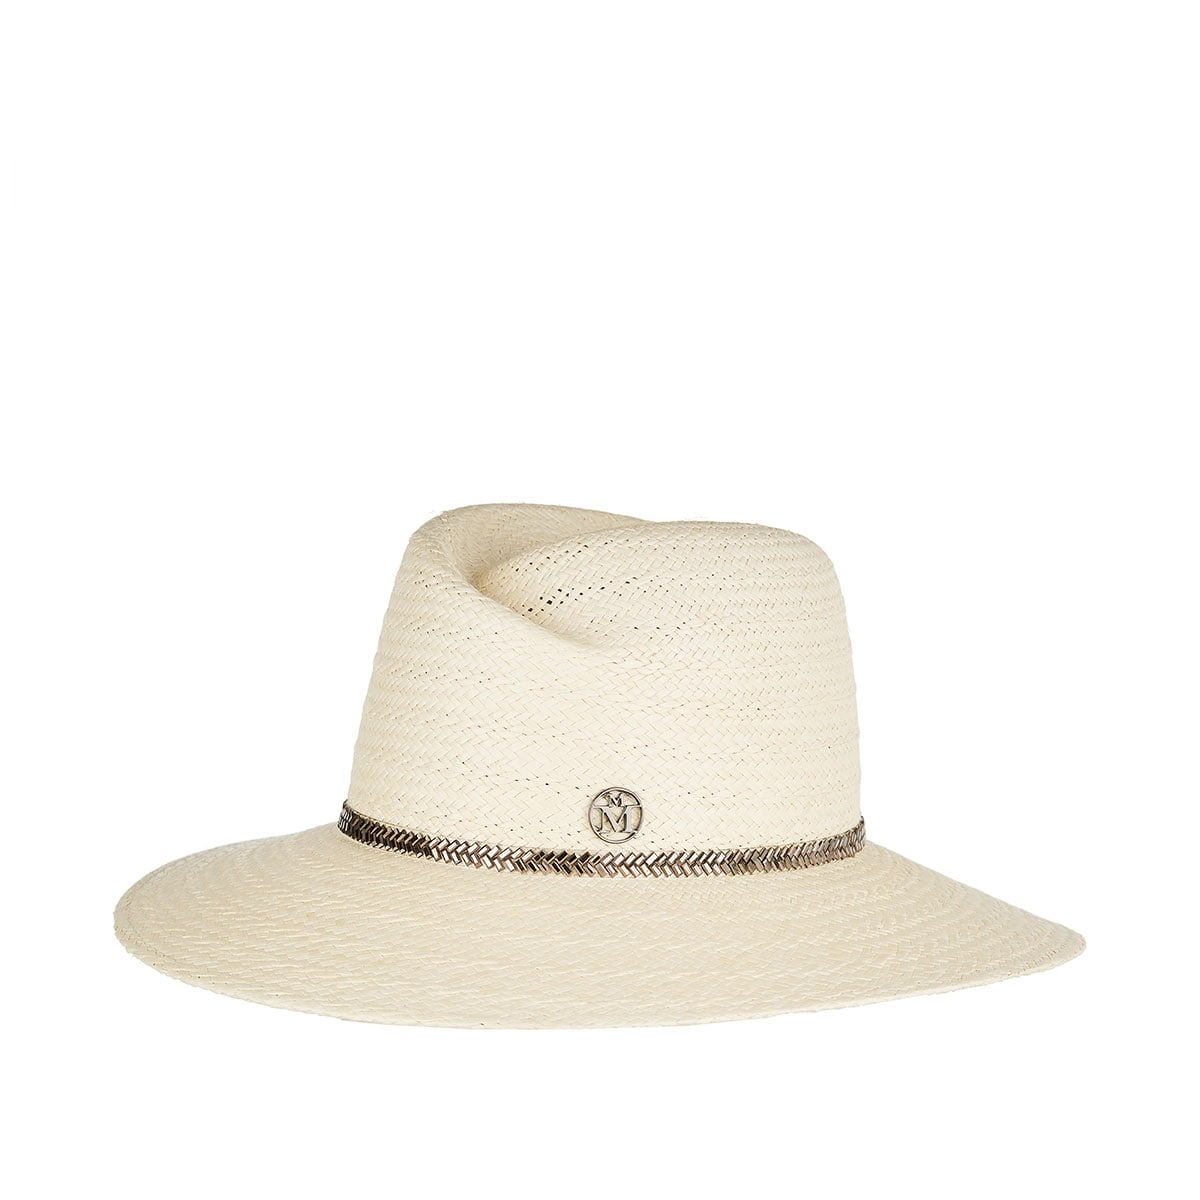 Virginie embellished straw fedora hat